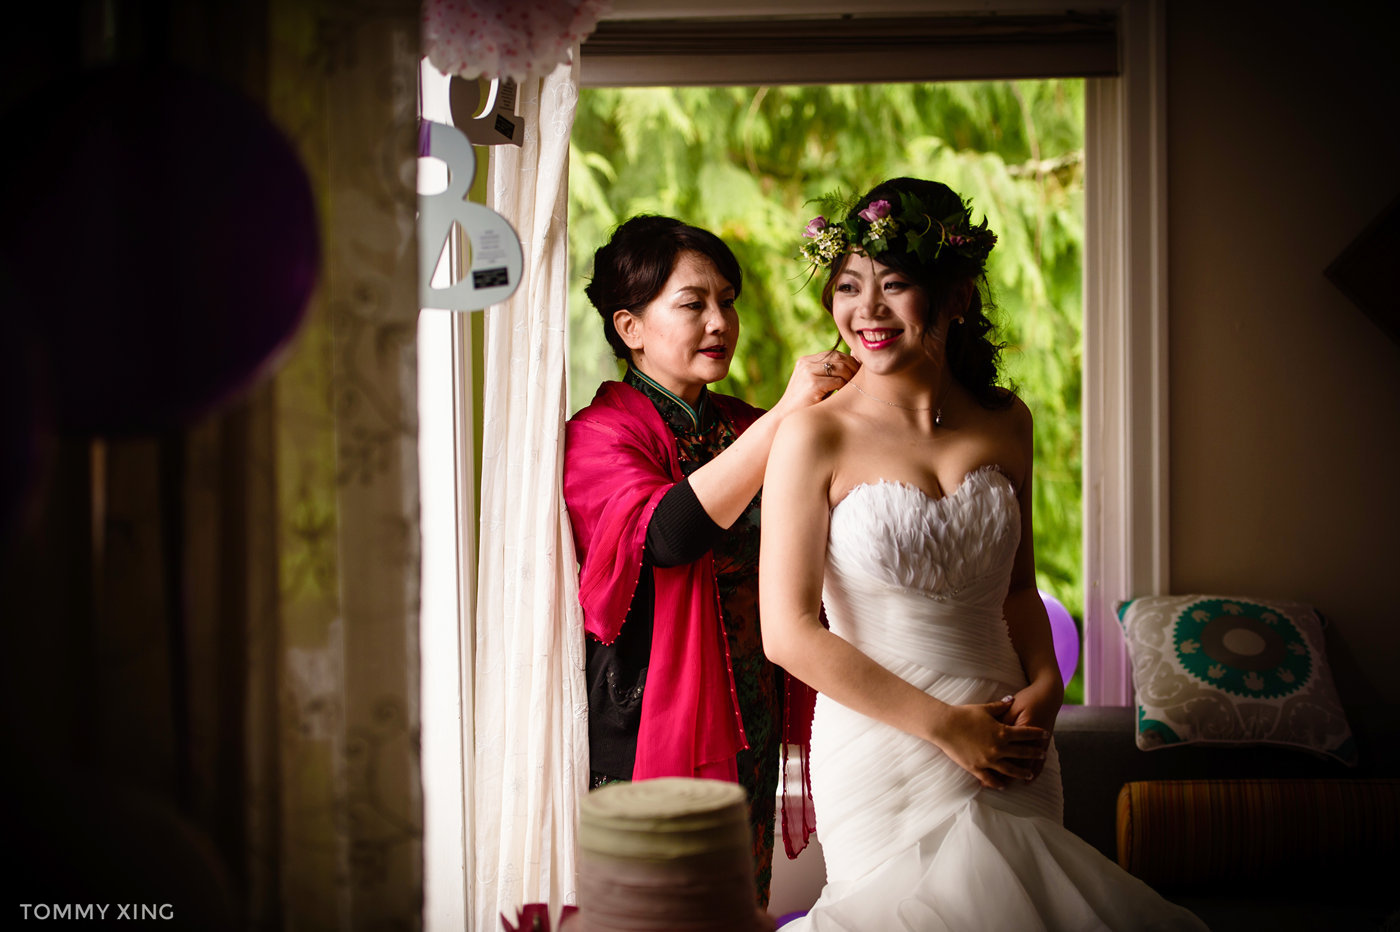 Seattle Wedding and pre wedding Los Angeles Tommy Xing Photography 西雅图洛杉矶旧金山婚礼婚纱照摄影师 031.jpg